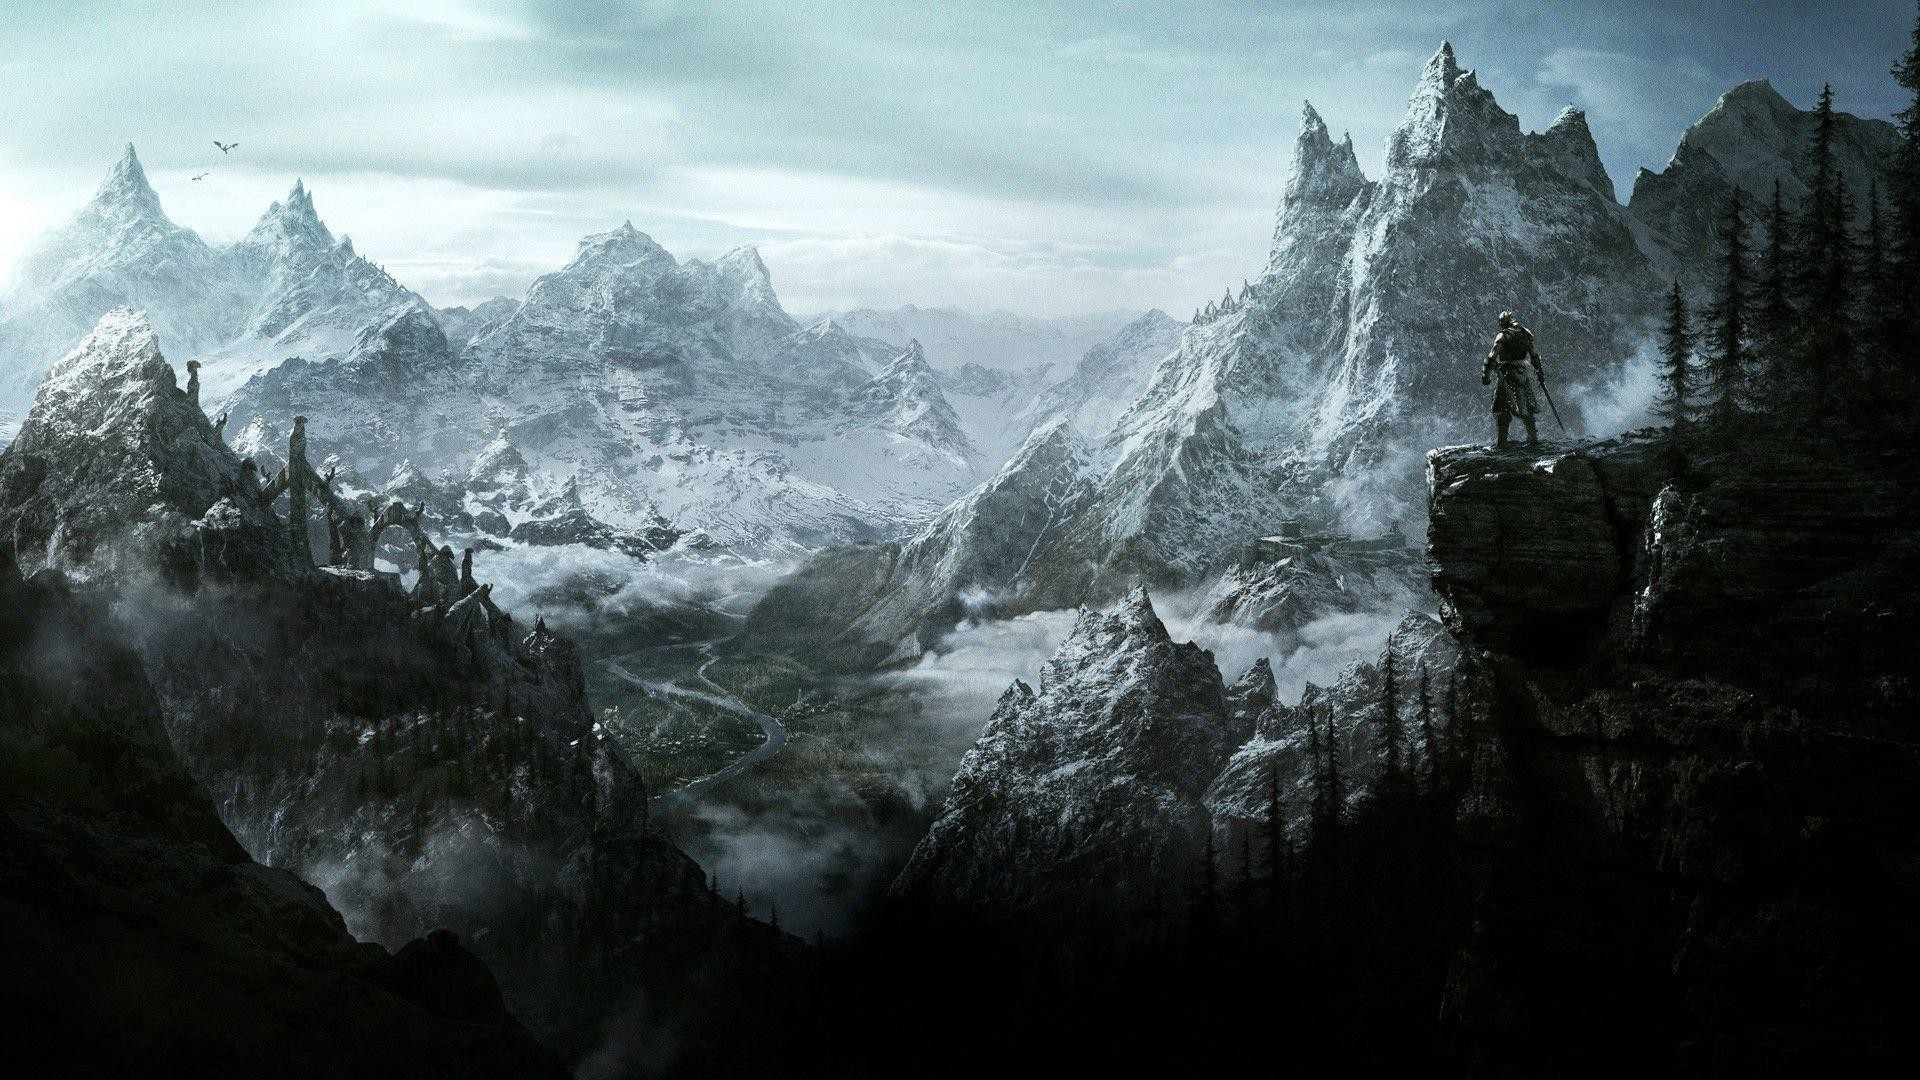 80+ skyrim wallpapers on wallpaperplay